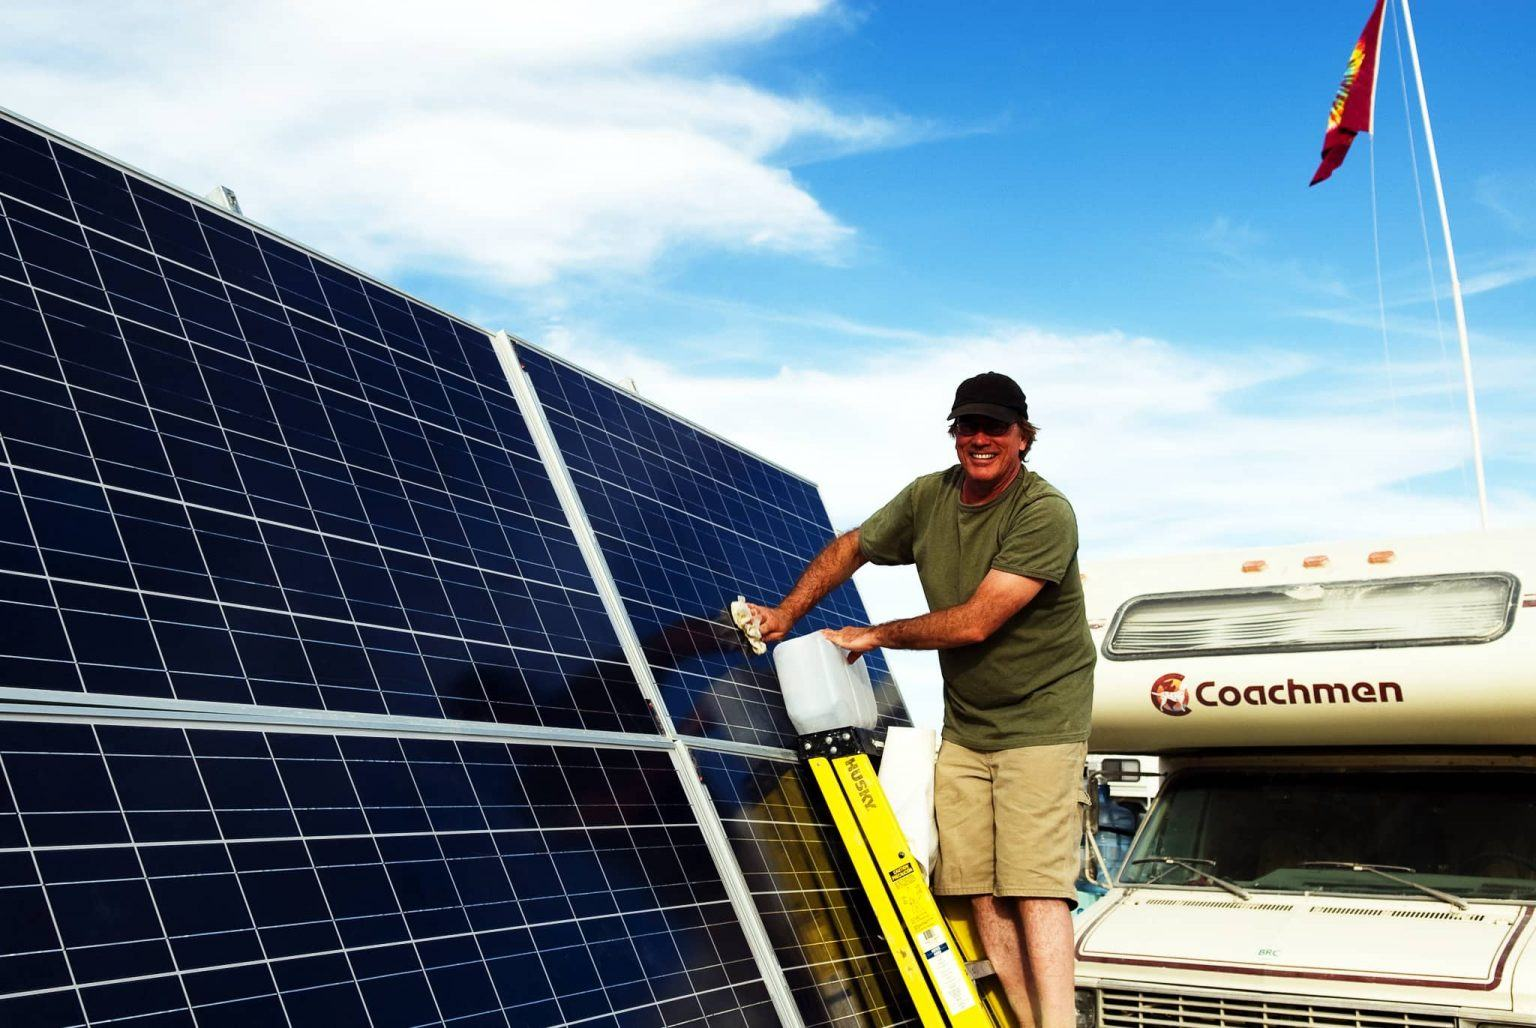 Sweeping a wet cloth is enough to clean solar panels.